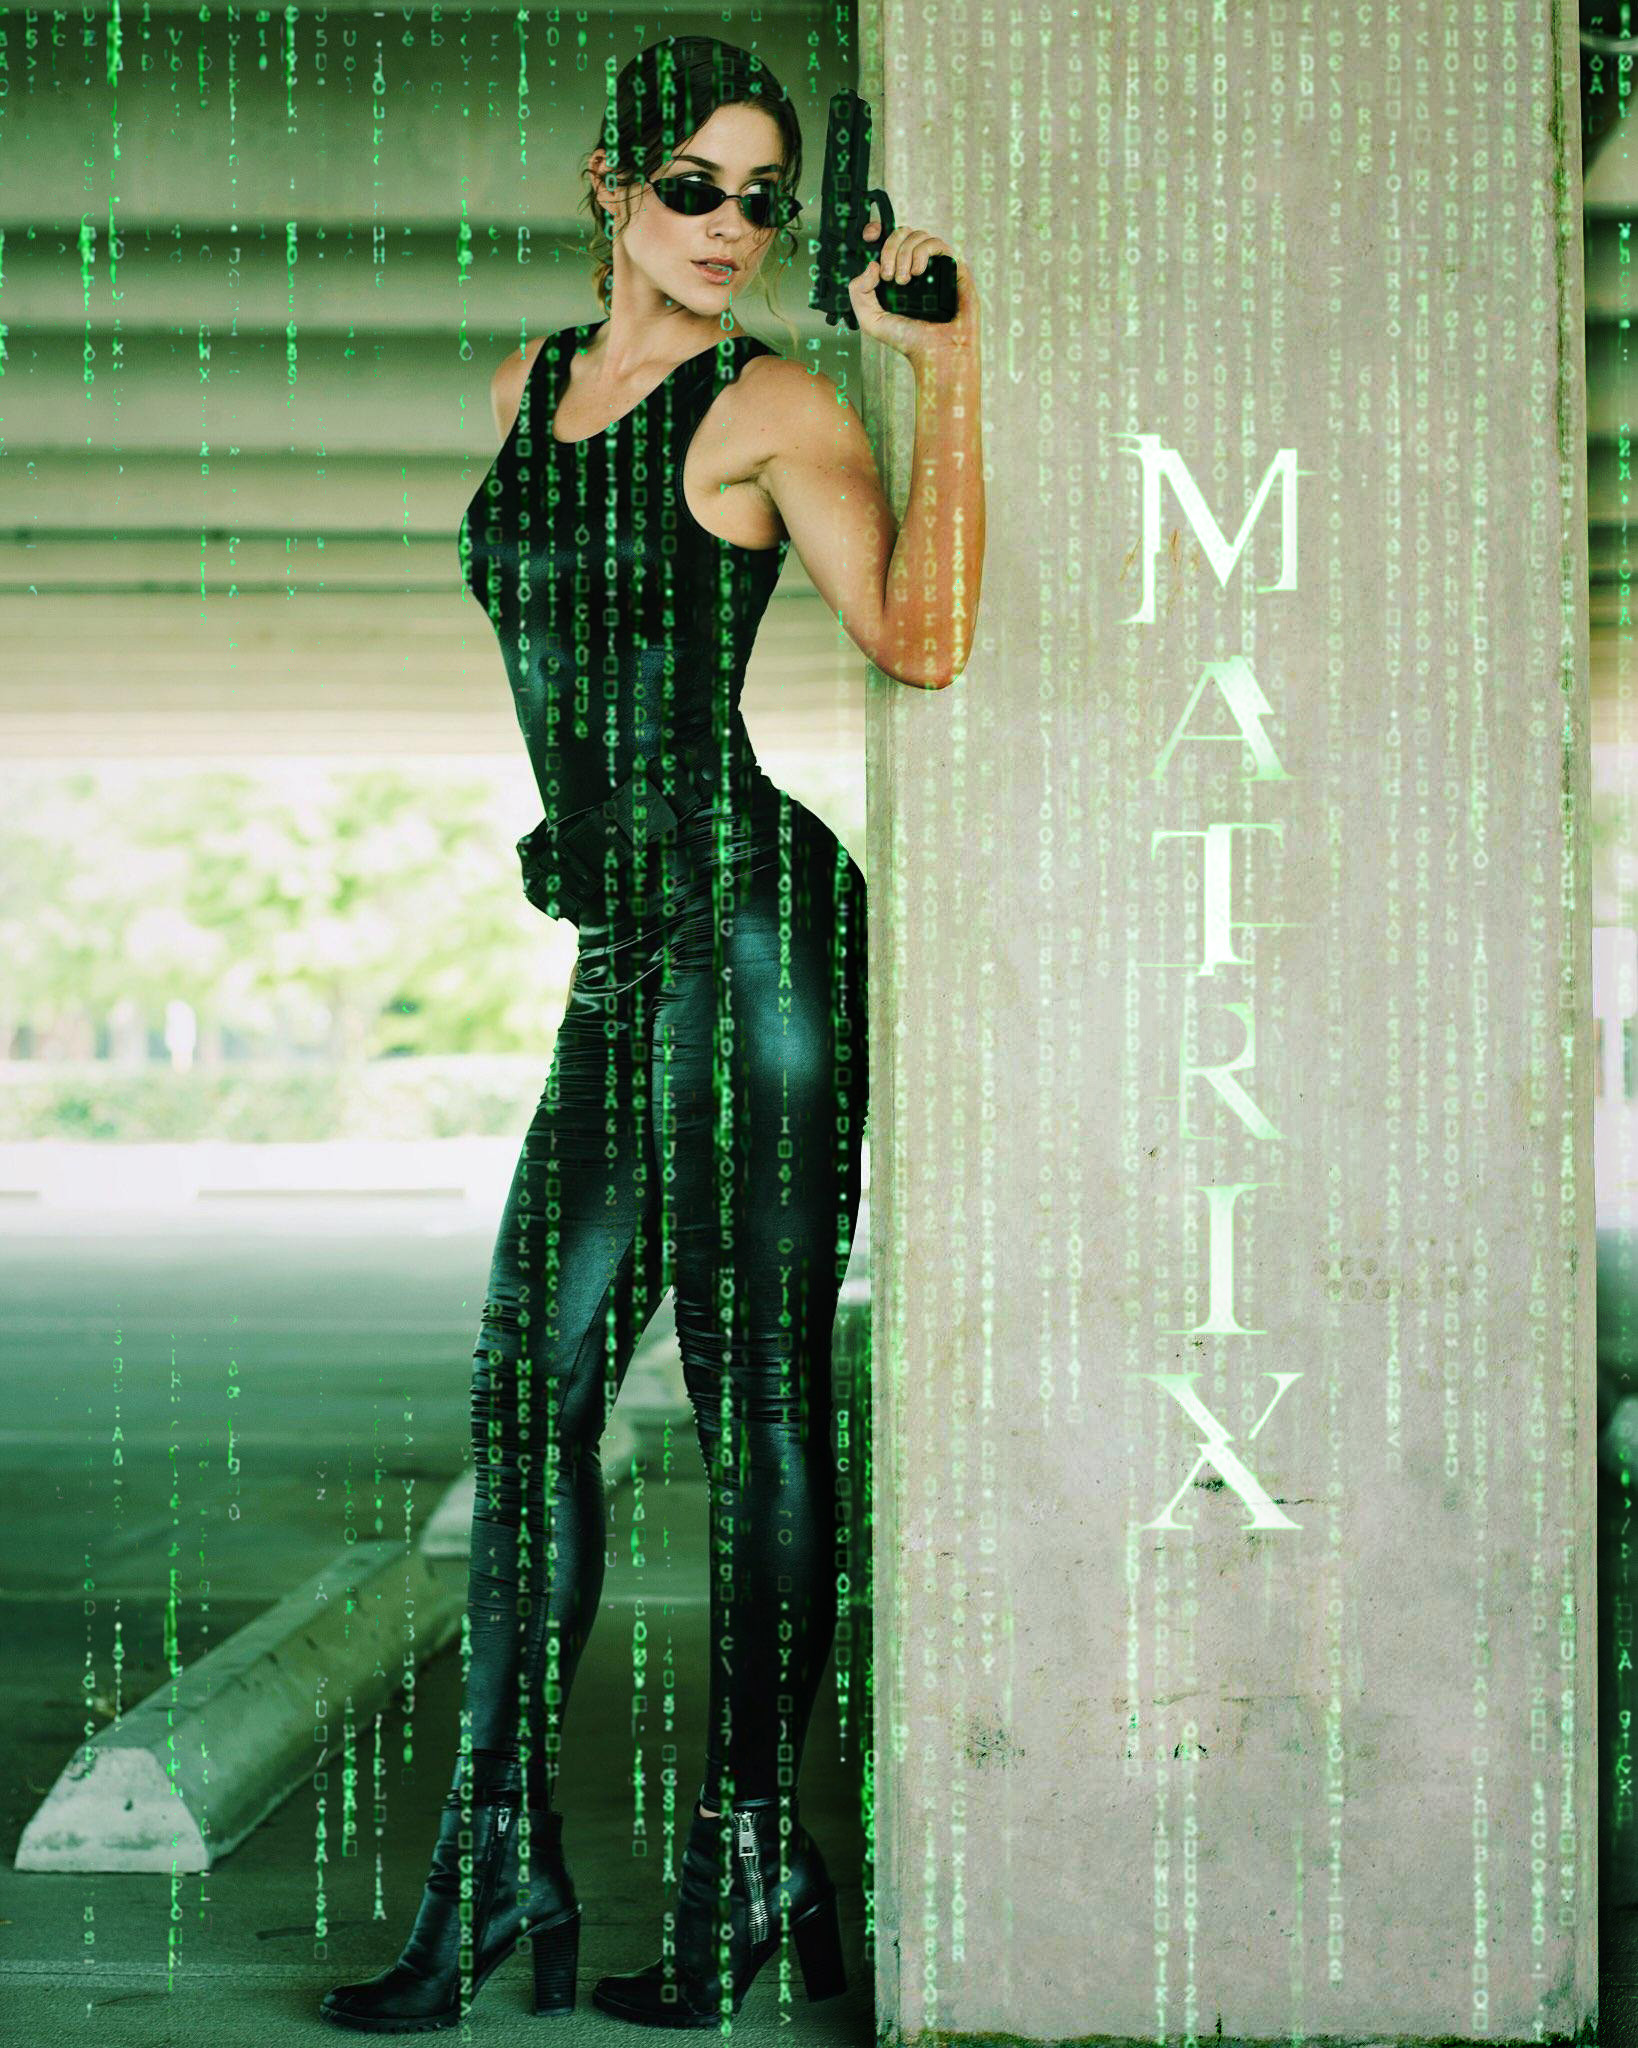 Trinity cosplayer from the Matrix movie